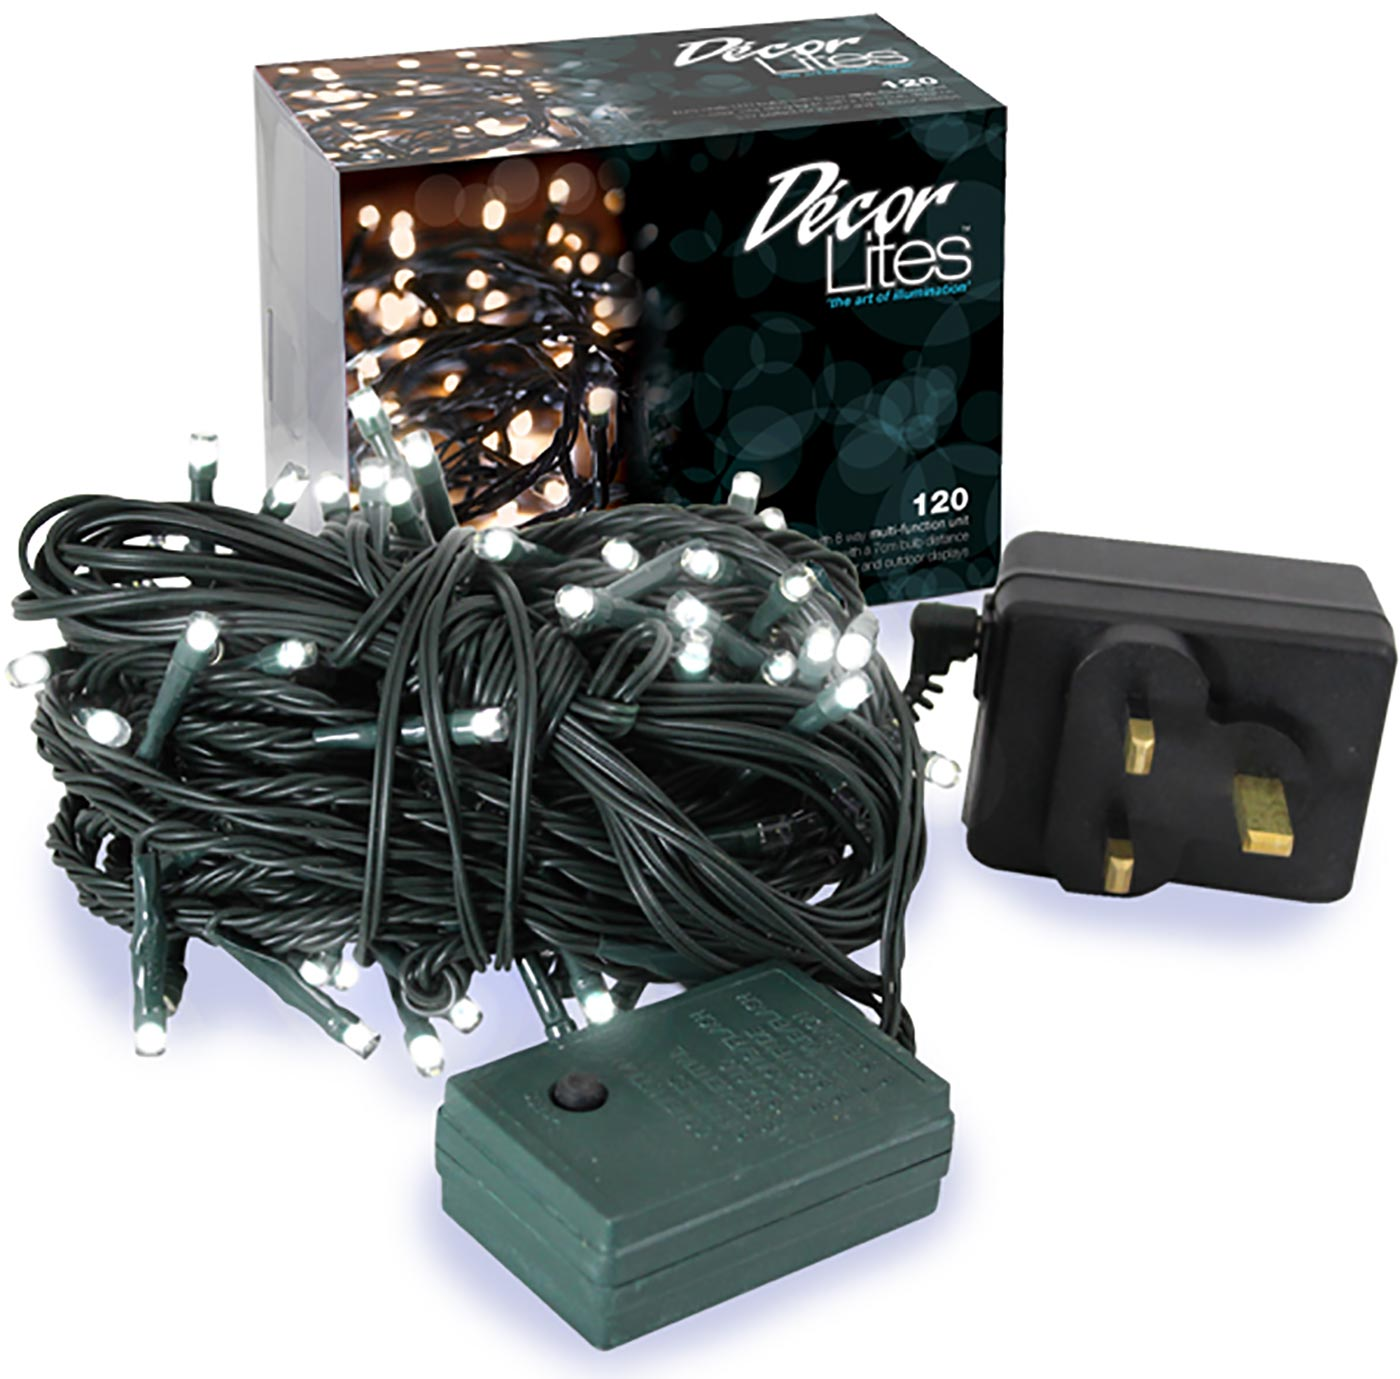 Décor Lites 120 Set White 24v (Green Wire) 8 Multifunction